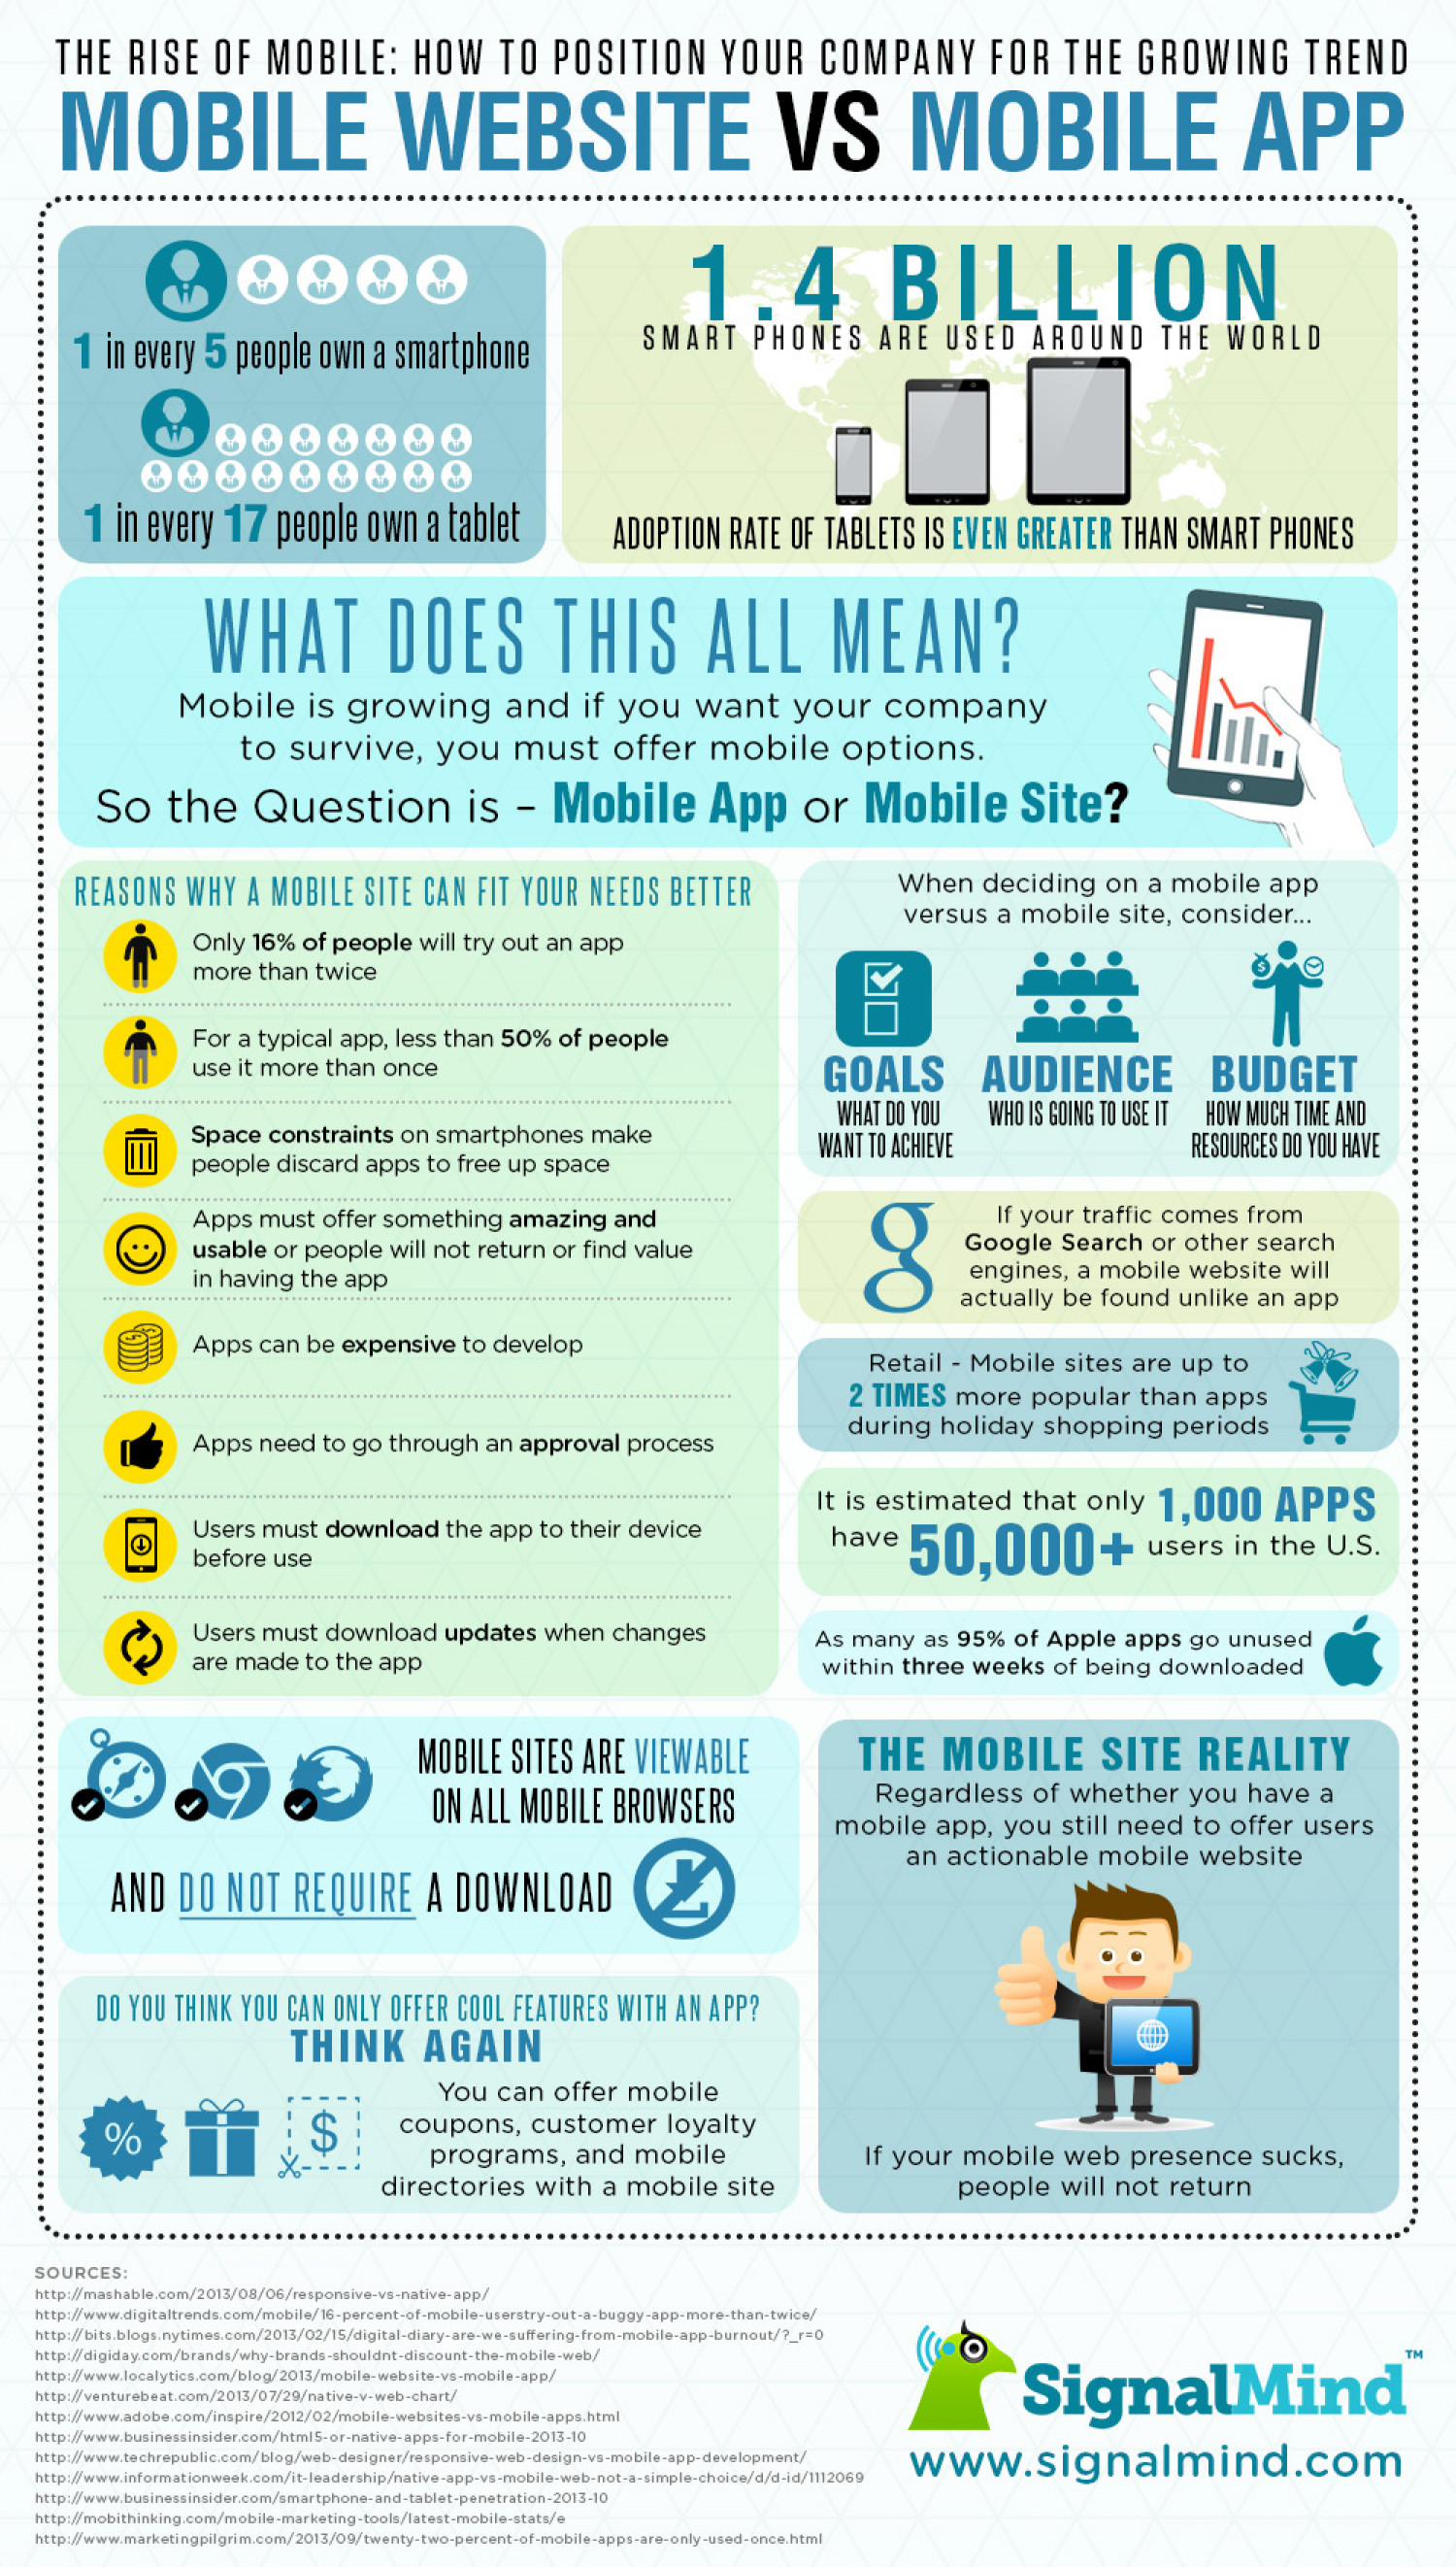 The Rise of Mobile - Mobile Website vs. Mobile App Infographic